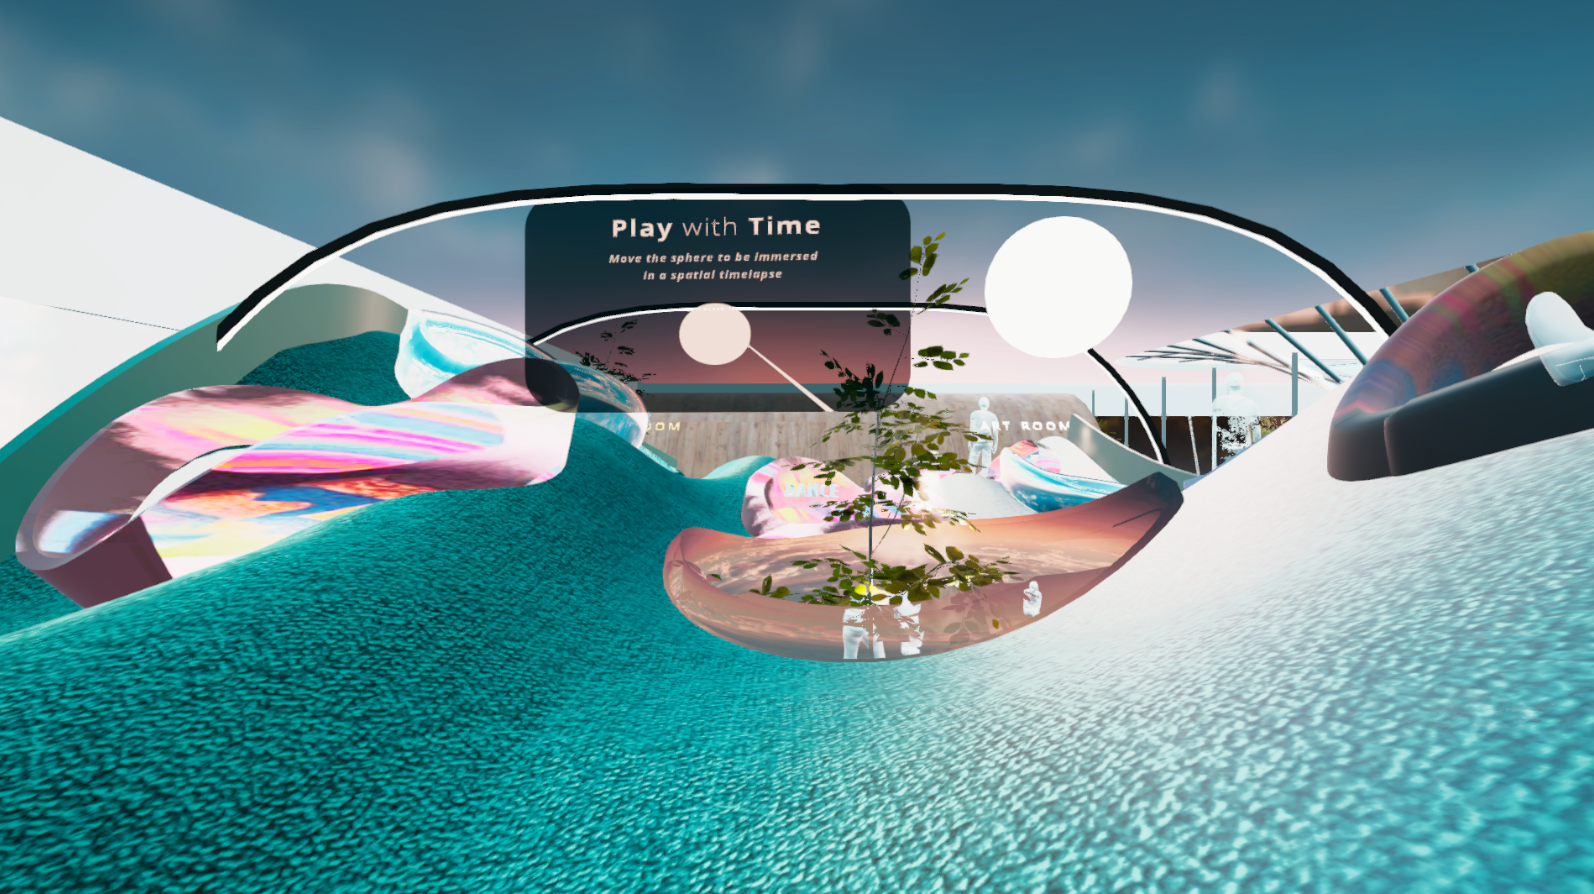 Social Network - Play with Time